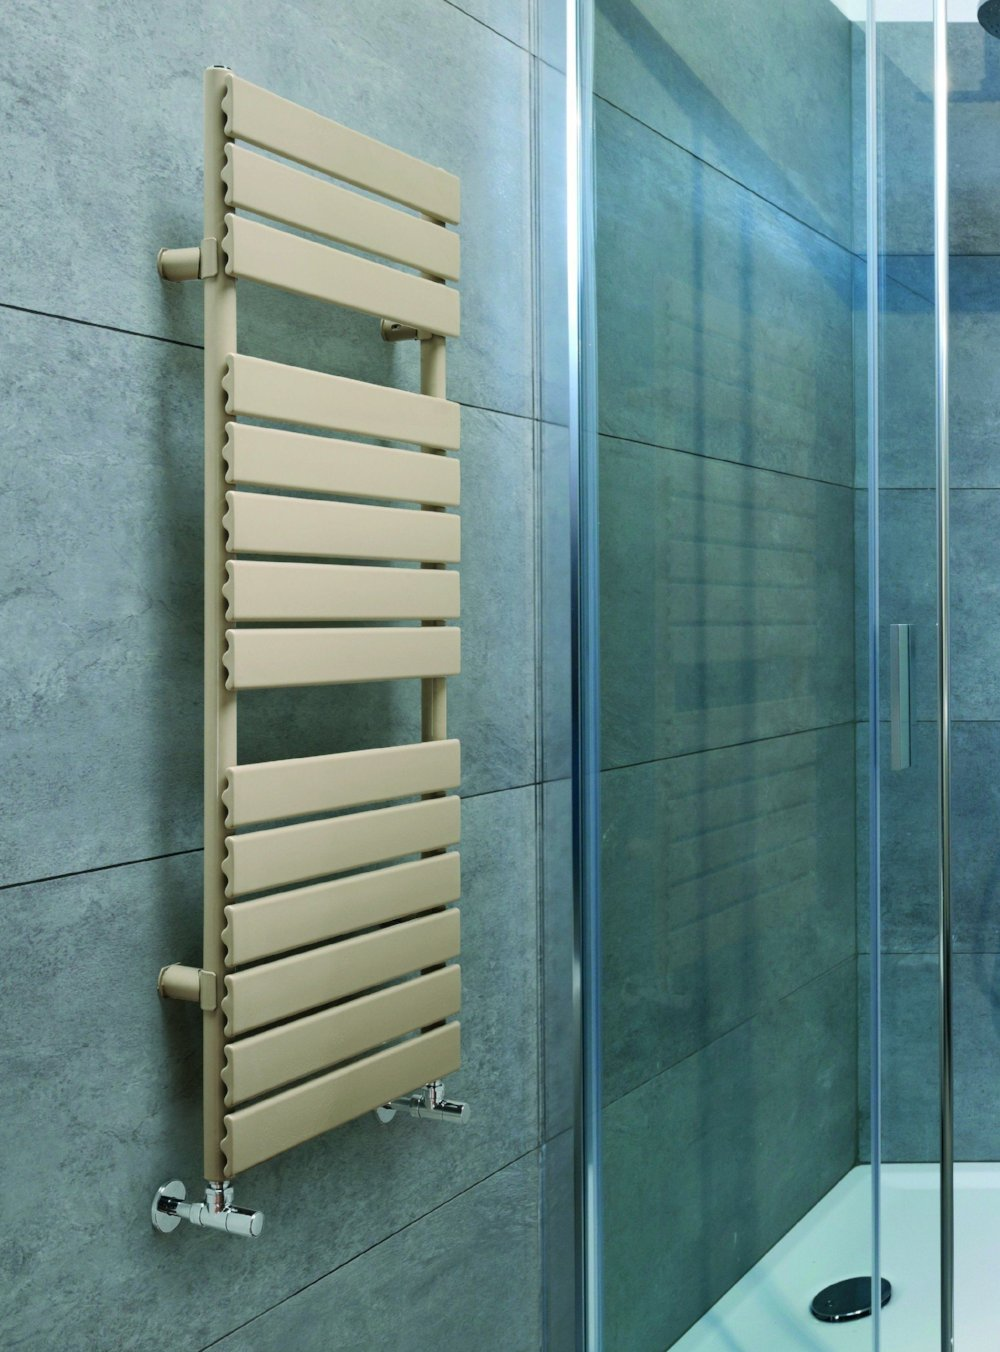 DQ Tornado Towel Radiator, Low prices, Free UK delivery – Great Rads ...